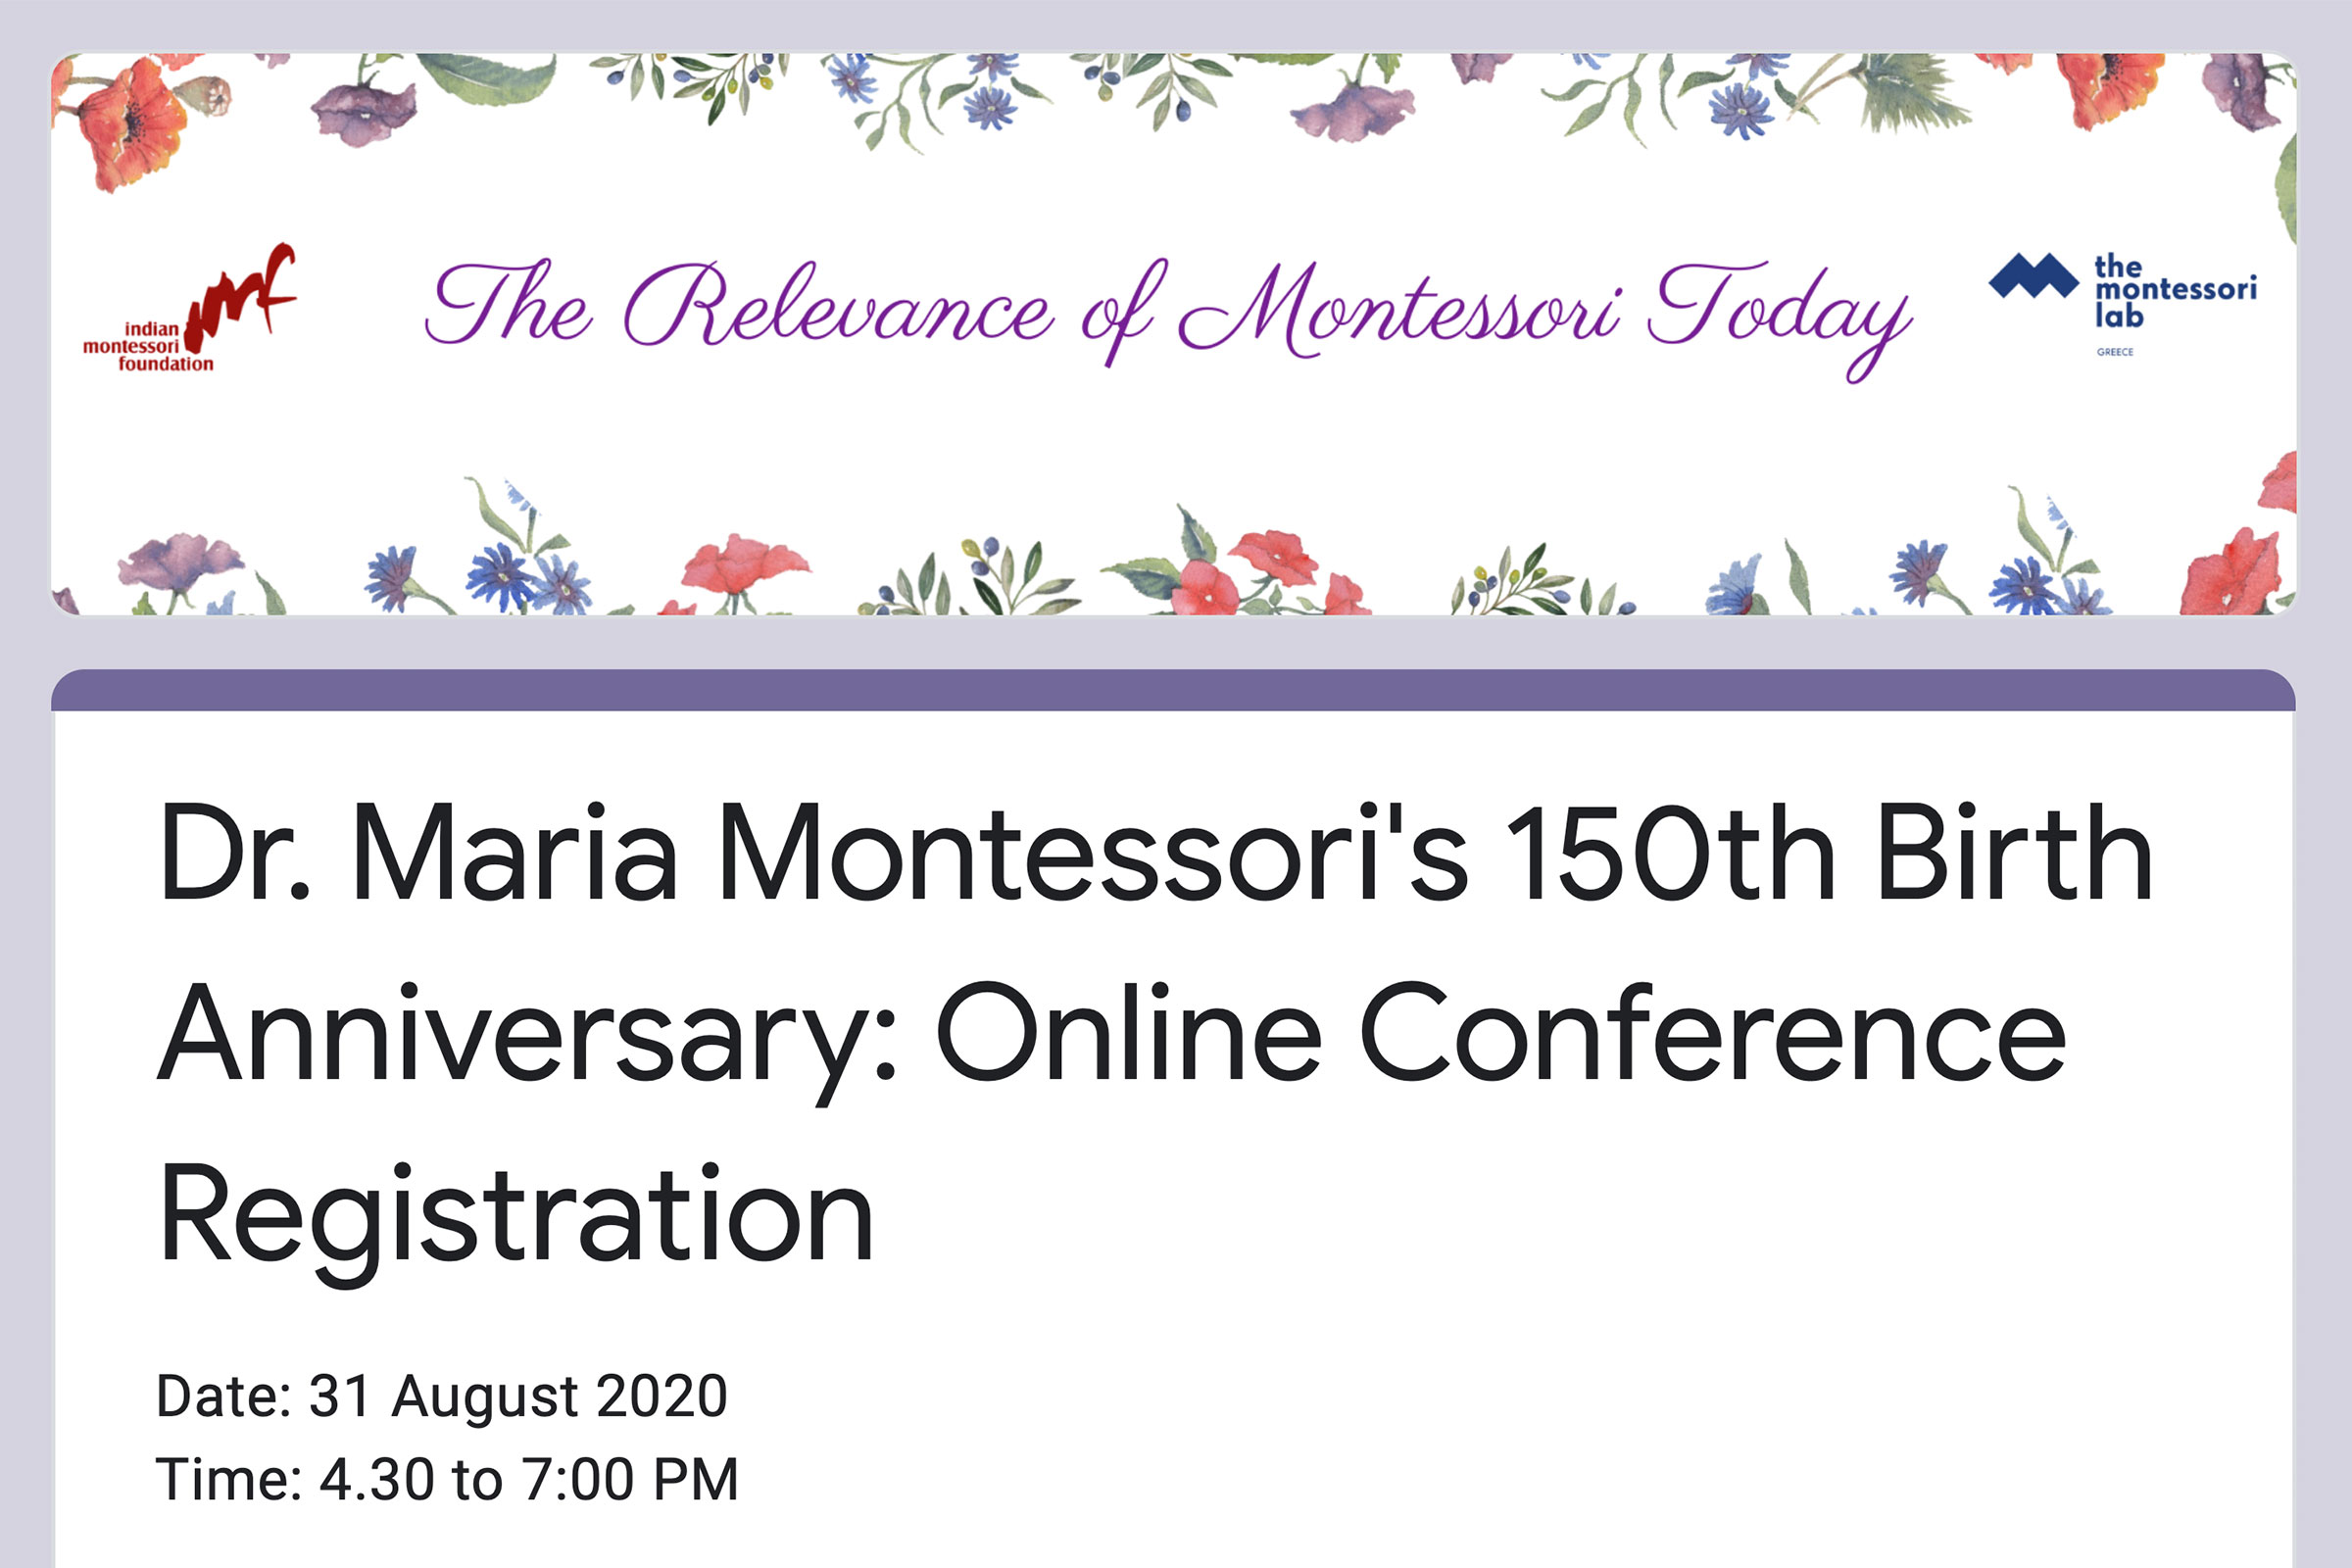 Online Conference, India, August 2020